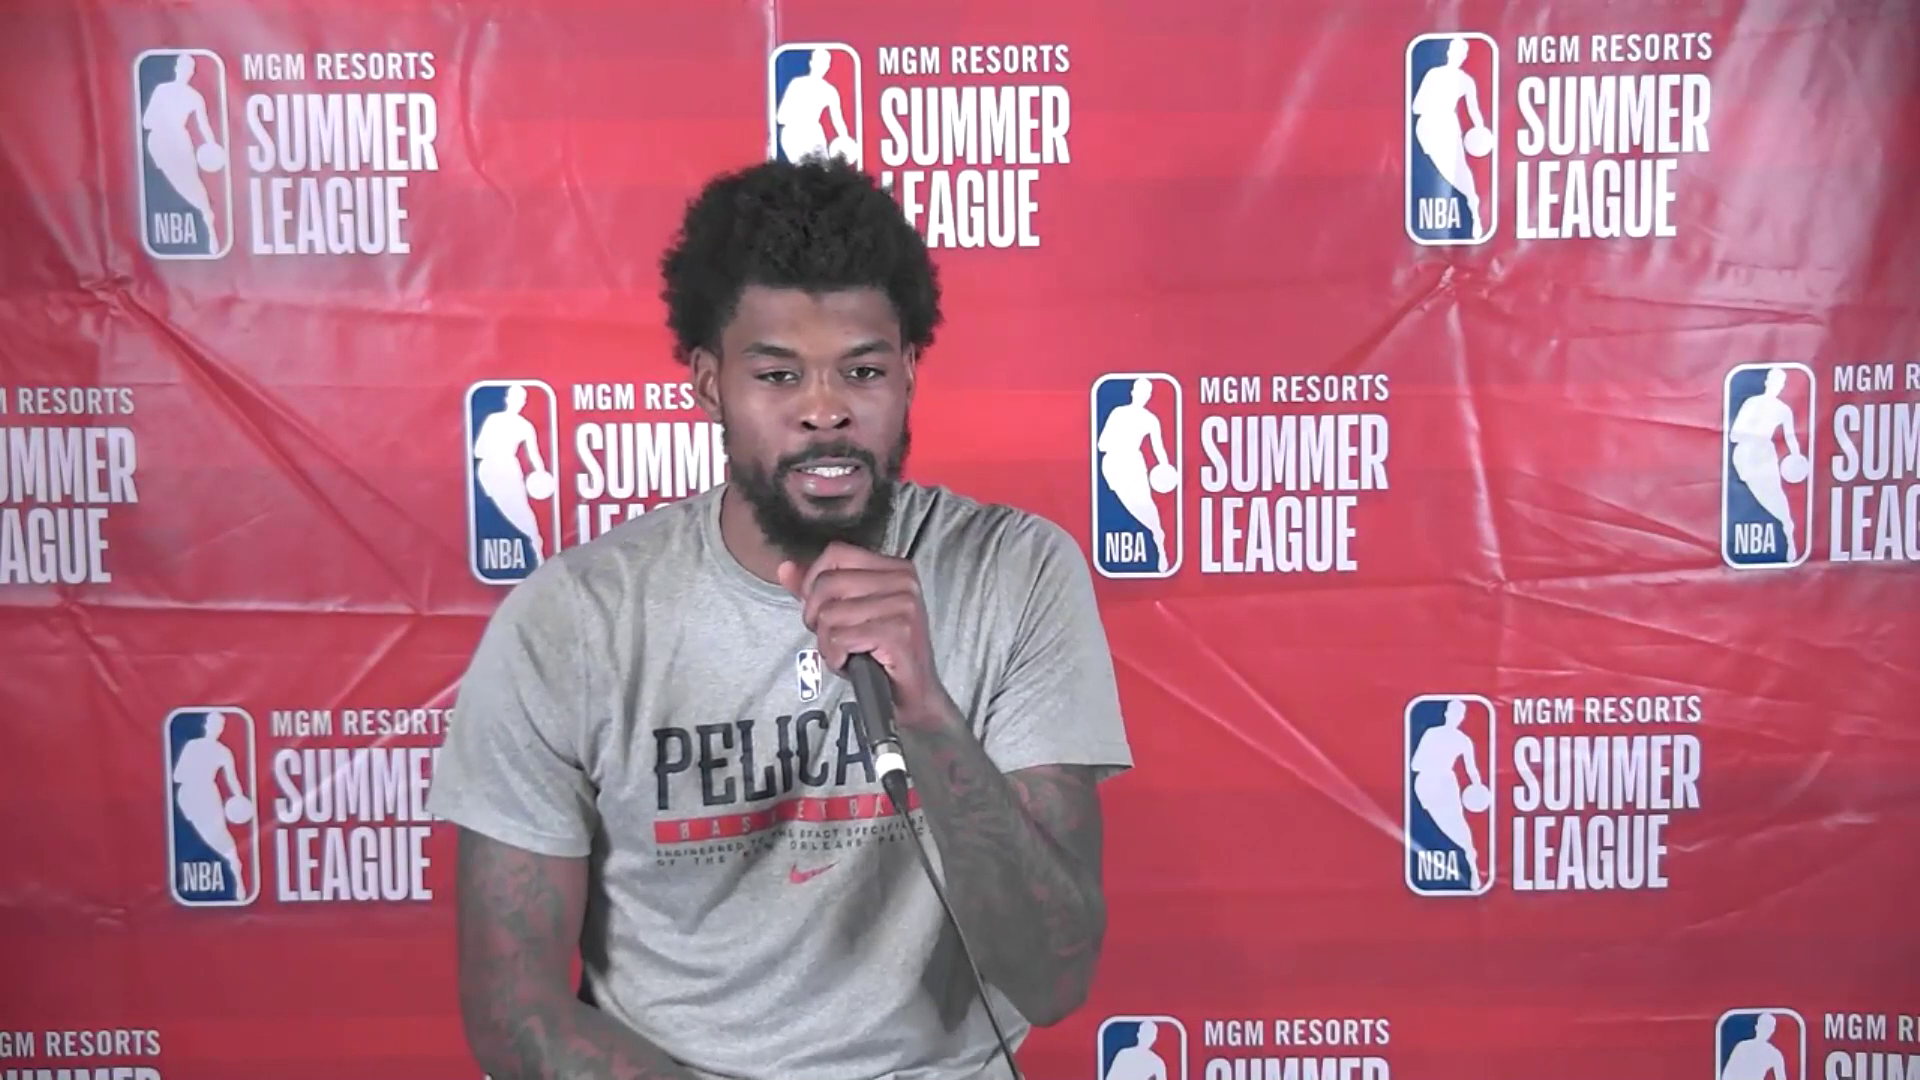 Naji Marshall Postgame Interview | Pelicans Summer League 8-17-21